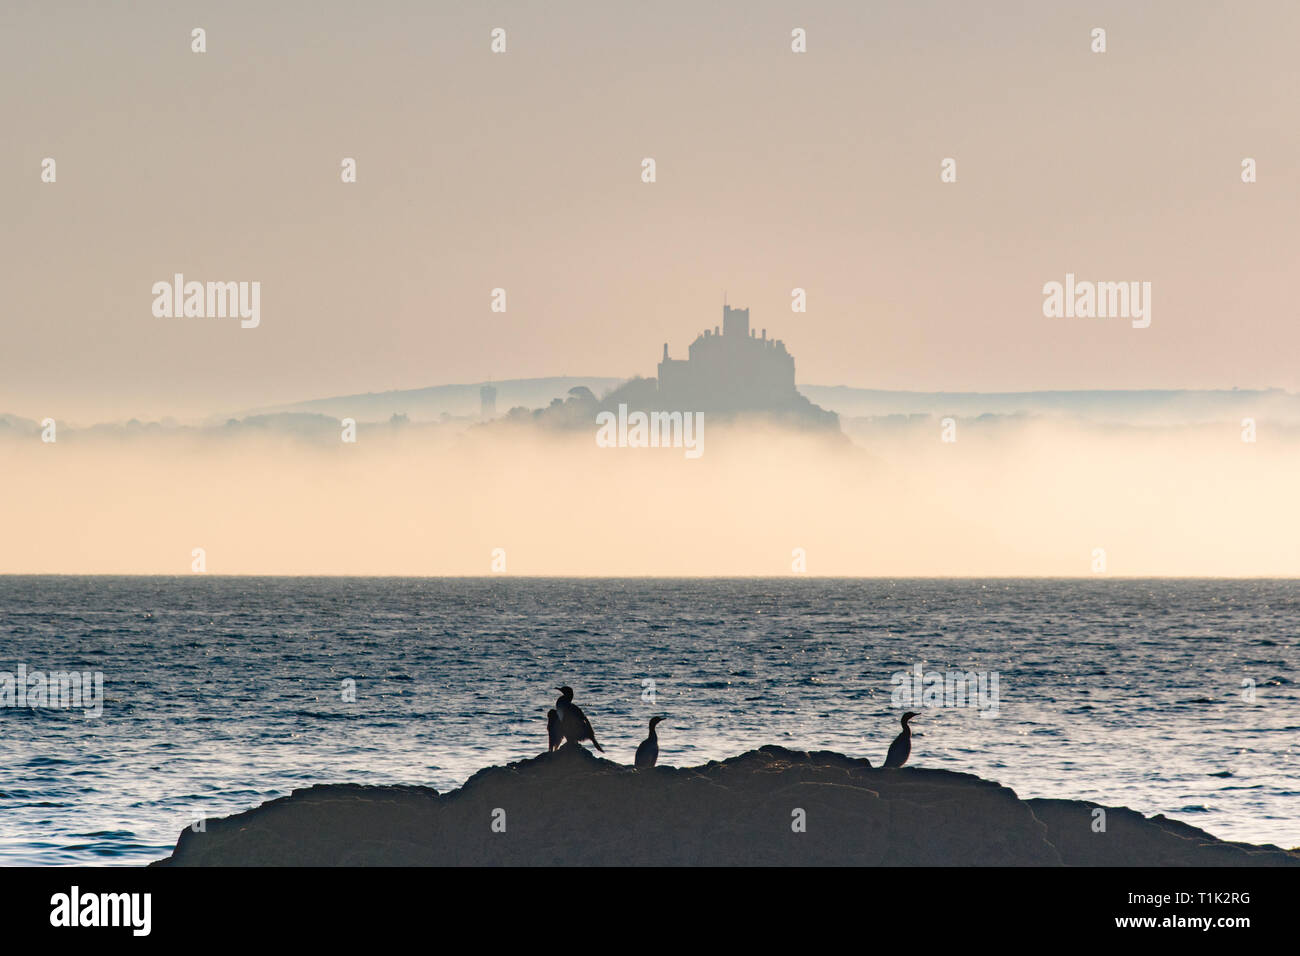 Penzance, Cornwall, UK. 27th Mar, 2019. UK Weather. Shortly after sunrise sea mist formed on the surface of the sea at Mounts Bay, shrouding the base of St Michaels mount. In the foreground cormorants warming themselves in the early morning sunshine Credit: Simon Maycock/Alamy Live News Stock Photo